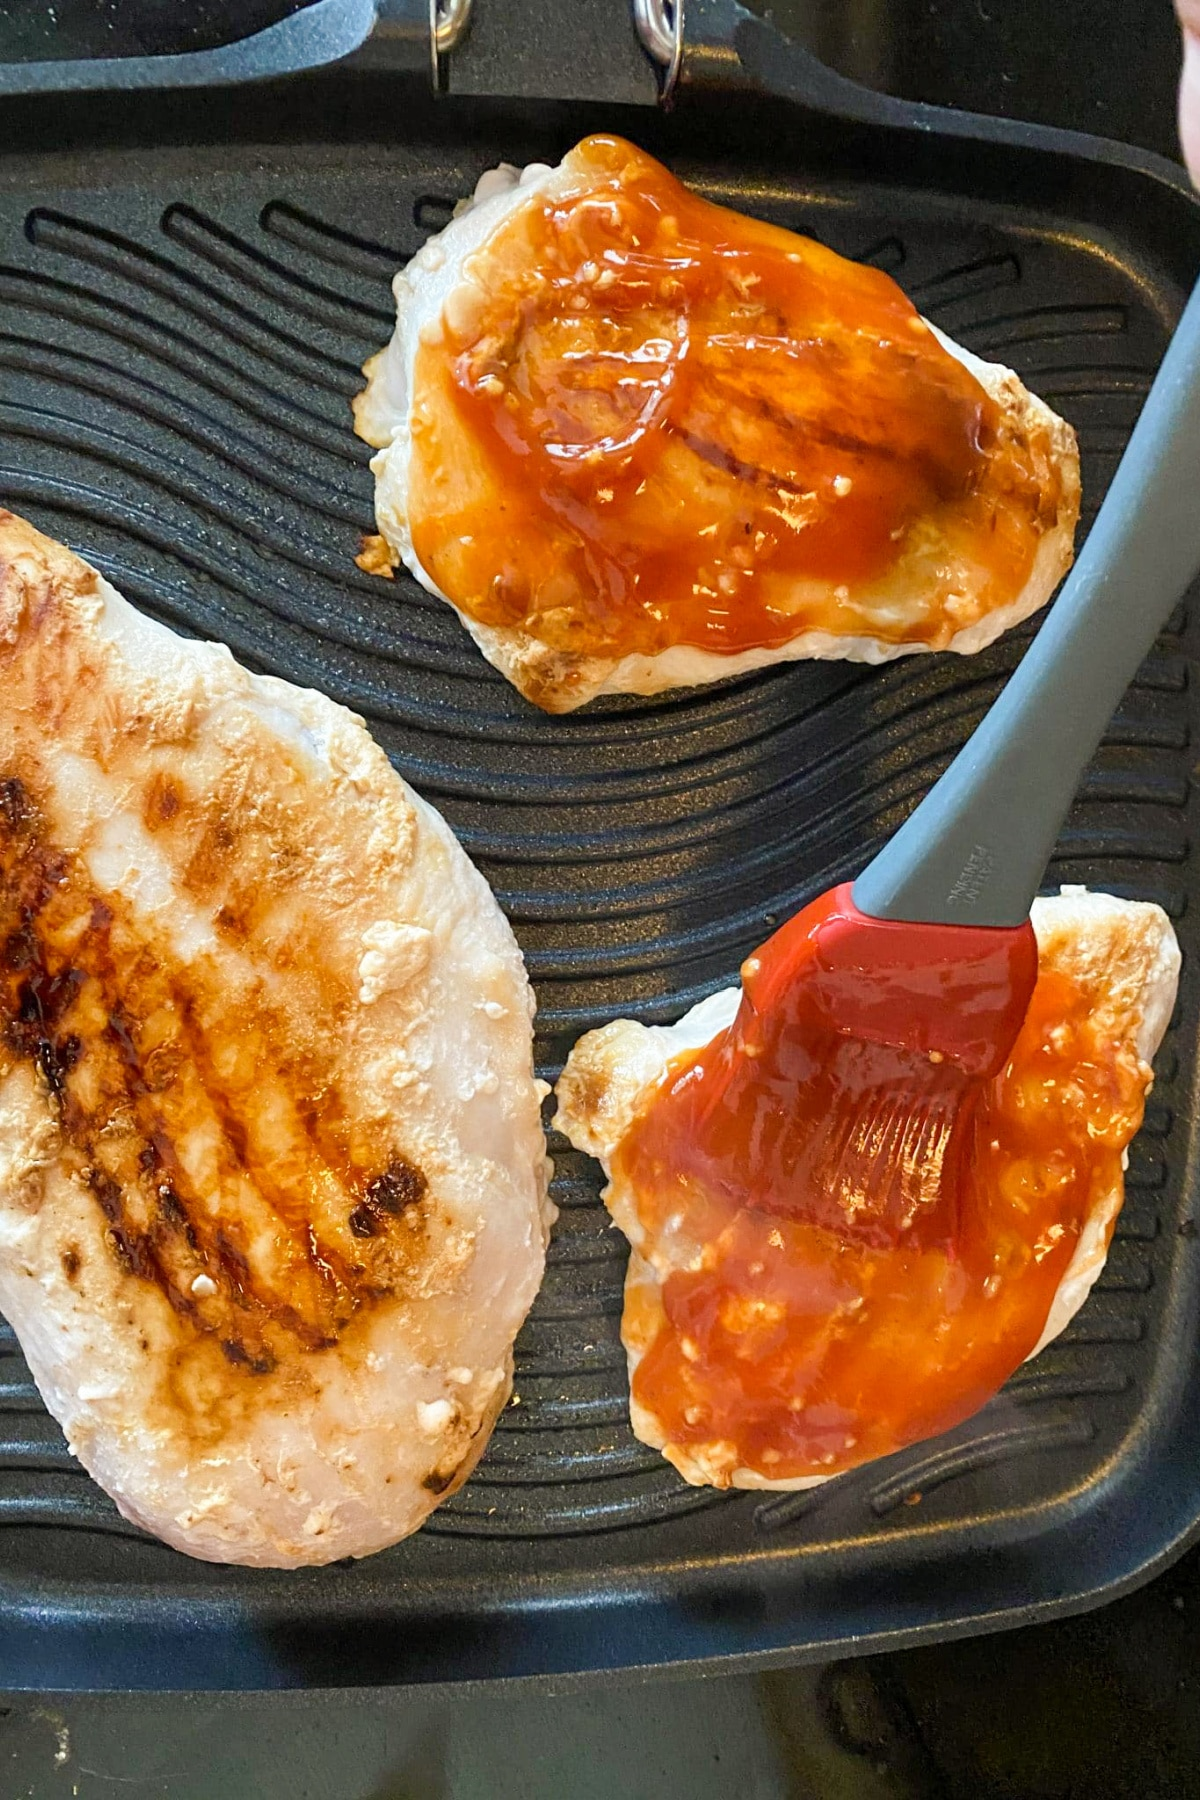 3 pieces of chicken breast on grill with BBQ sauce being spread on one piece